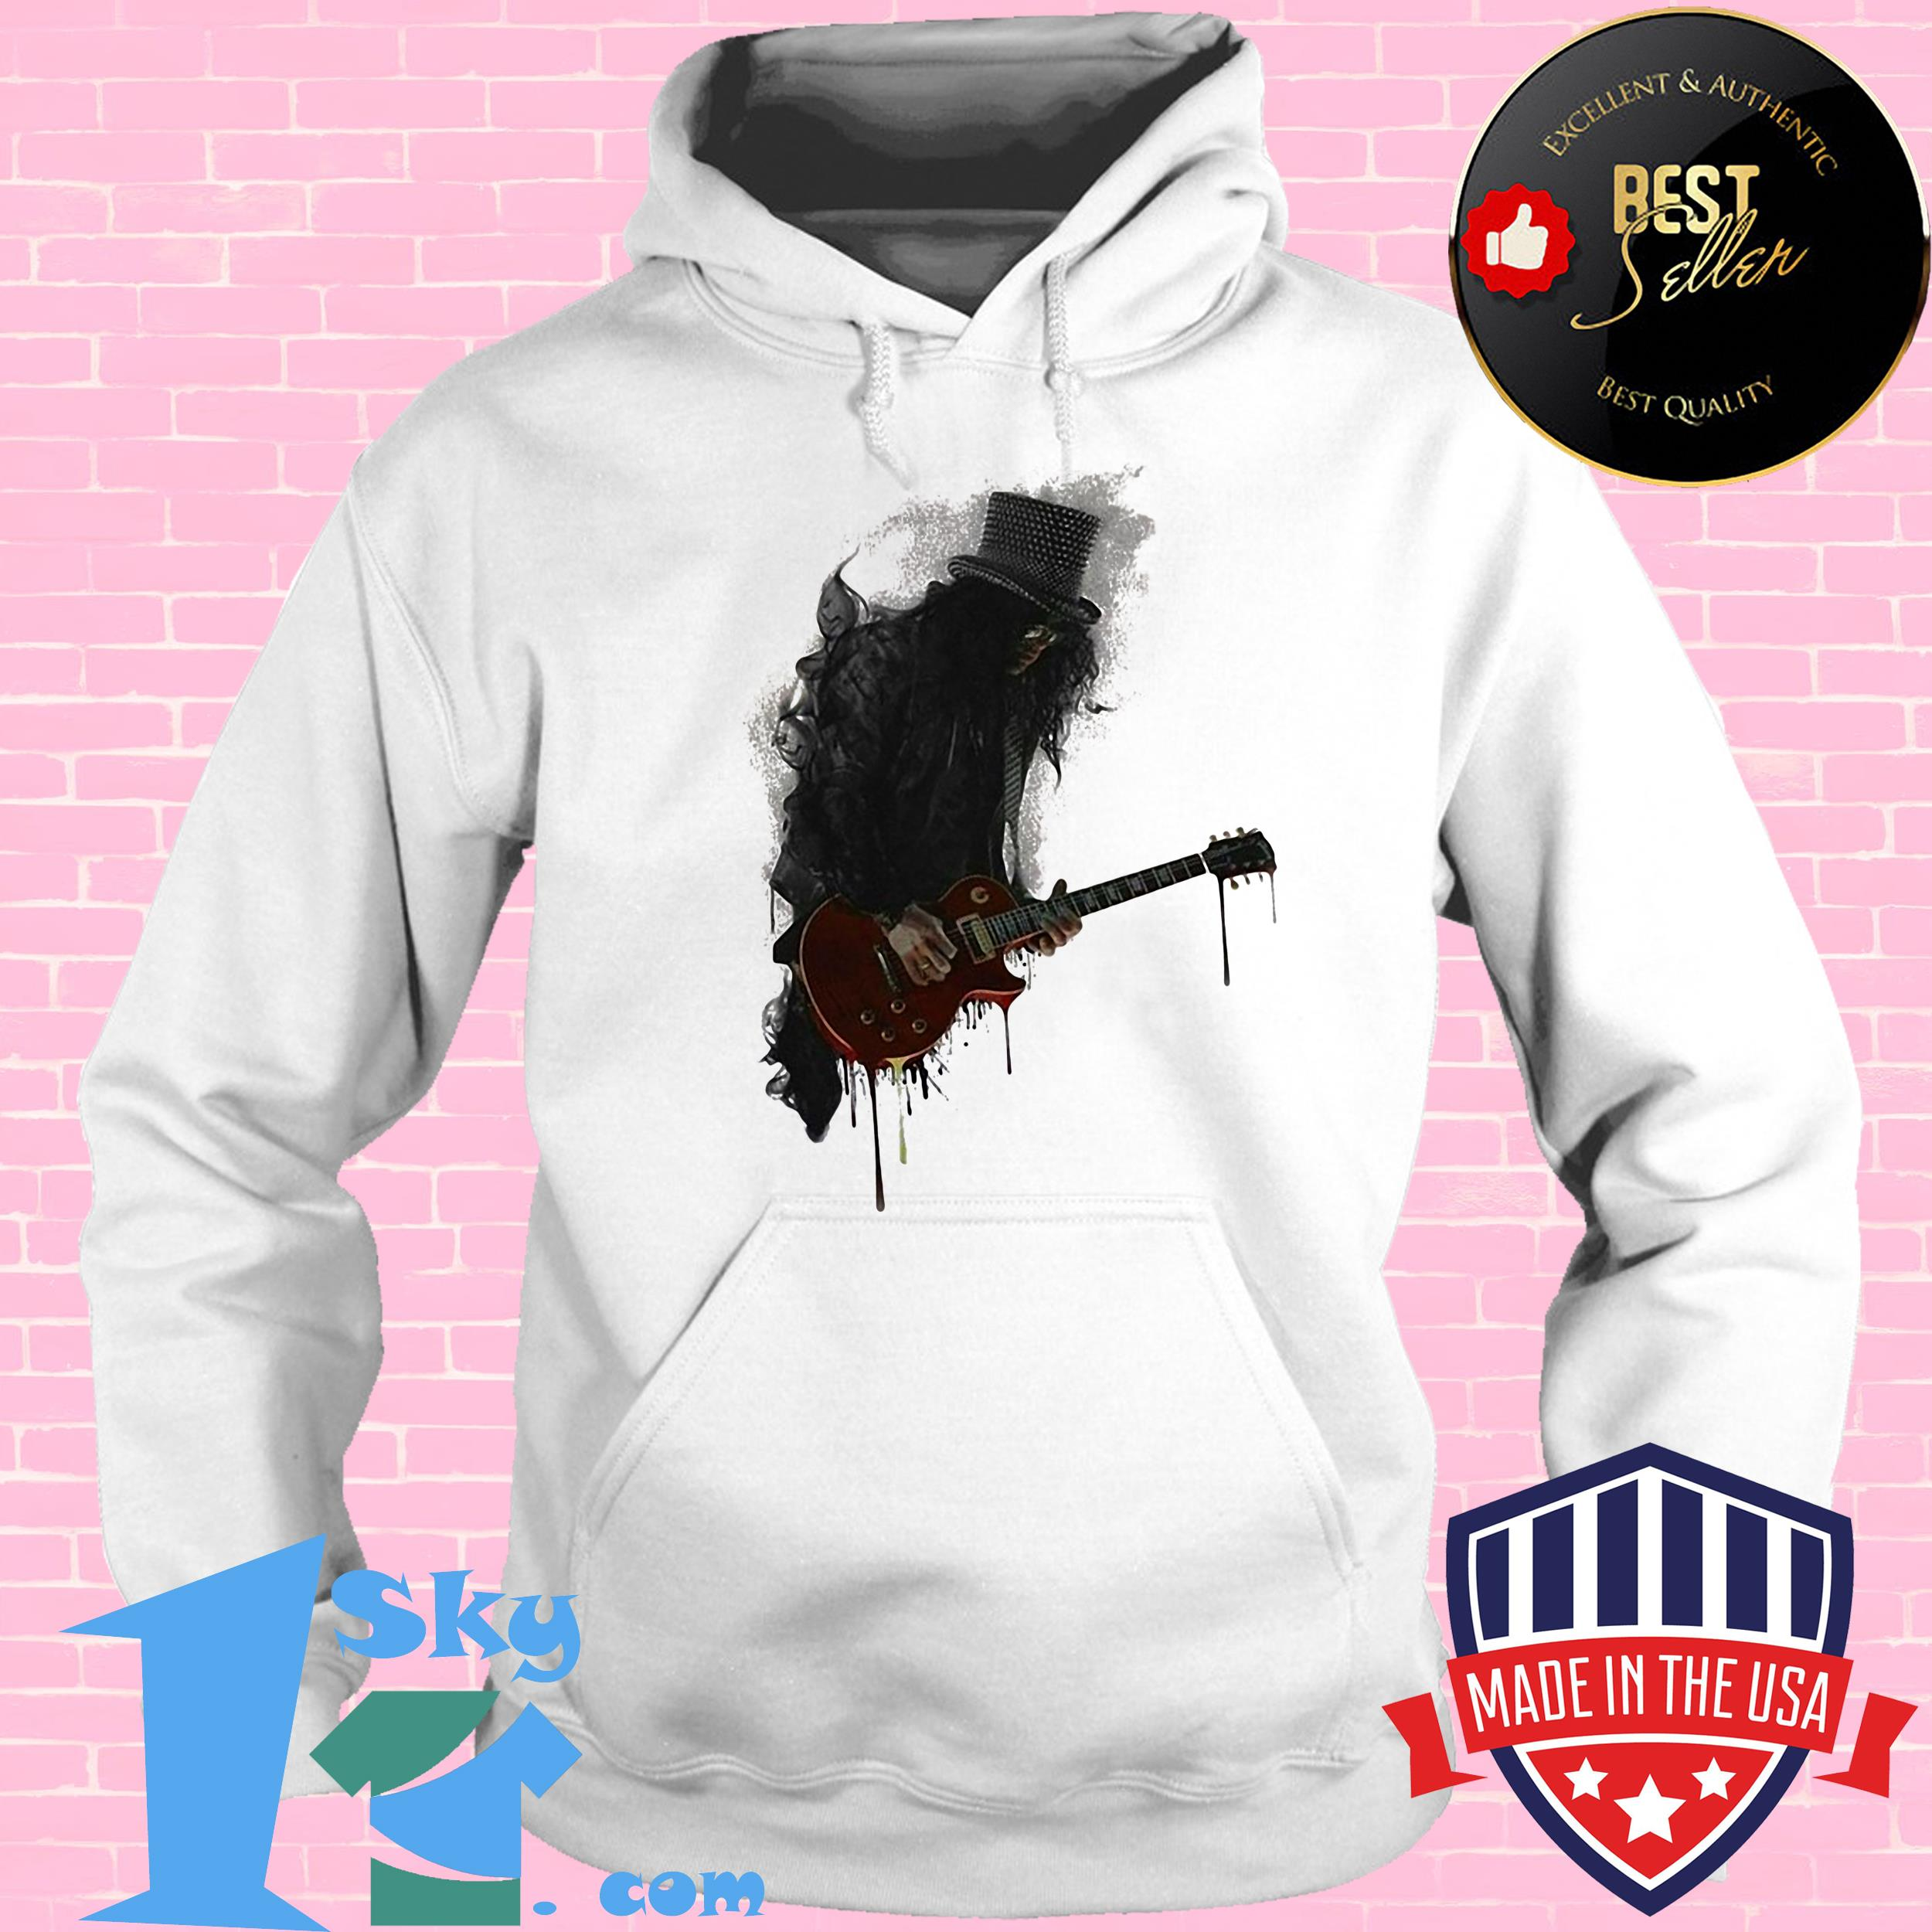 goose artist with electric guitar hoodie - Goose Artist with Electric Guitar Shirt